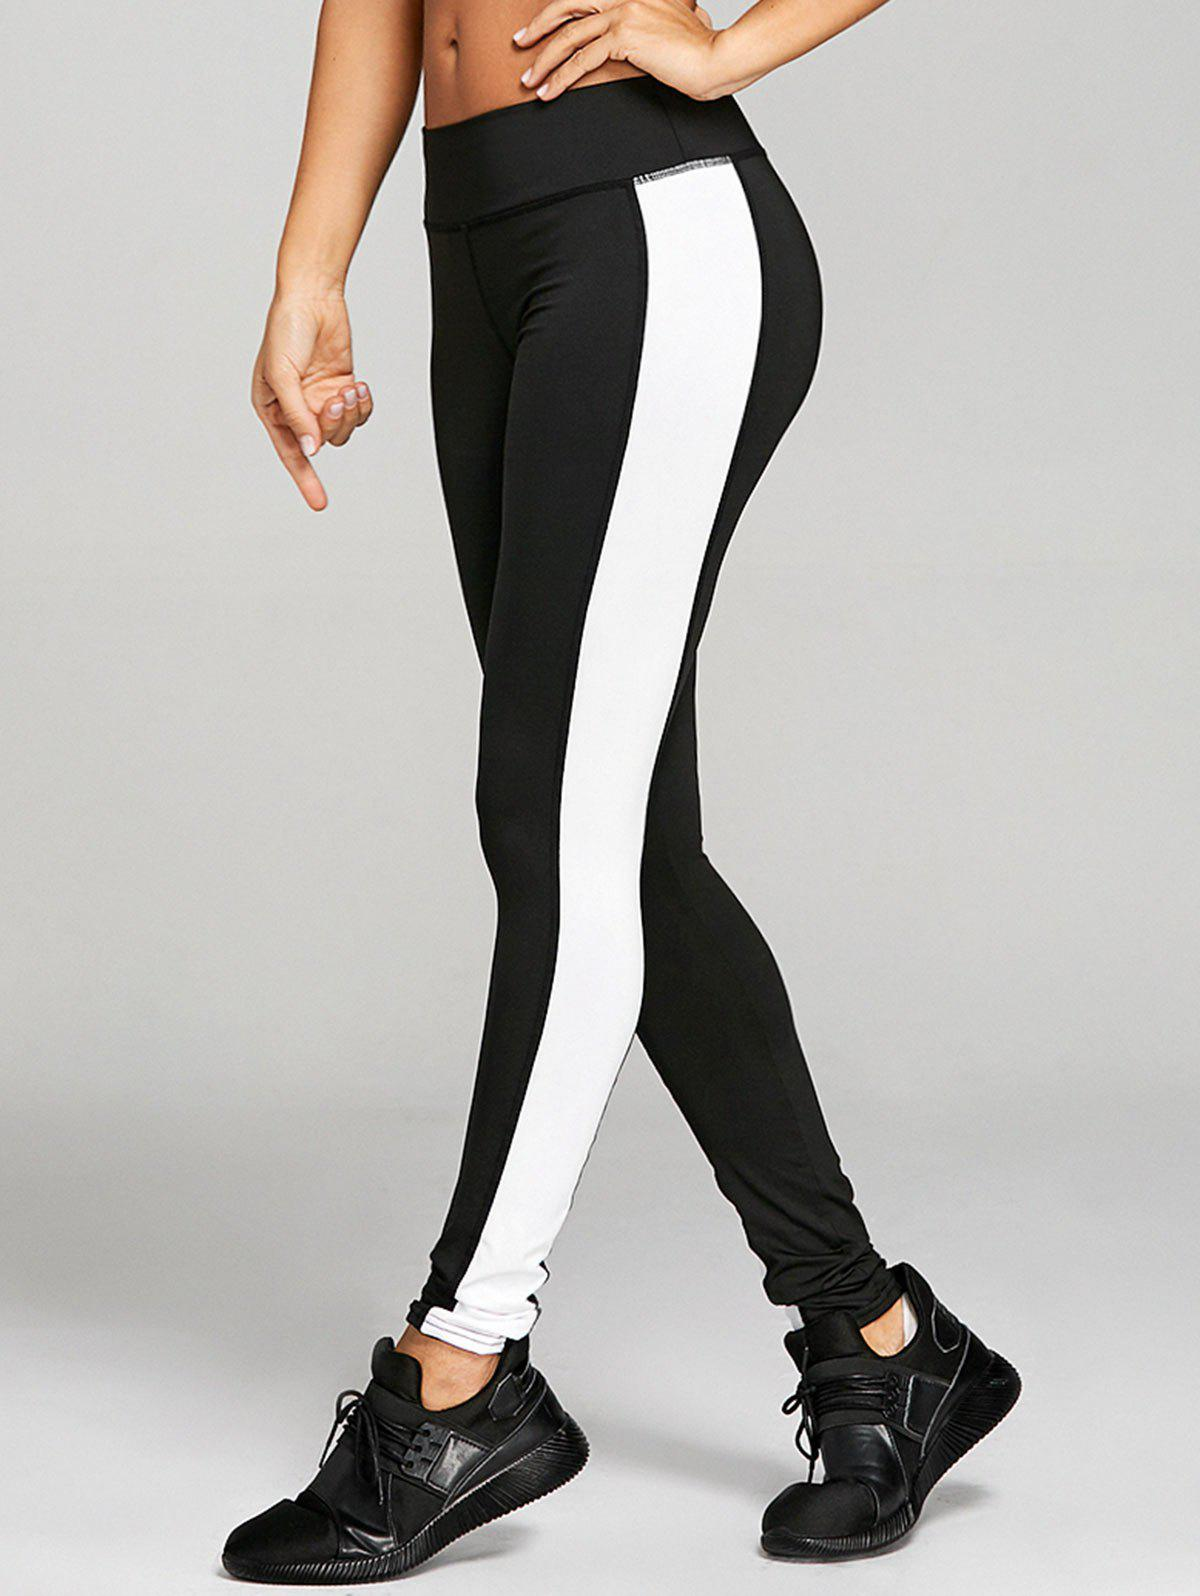 Cheap Stretchy Two Tone Workout Leggings